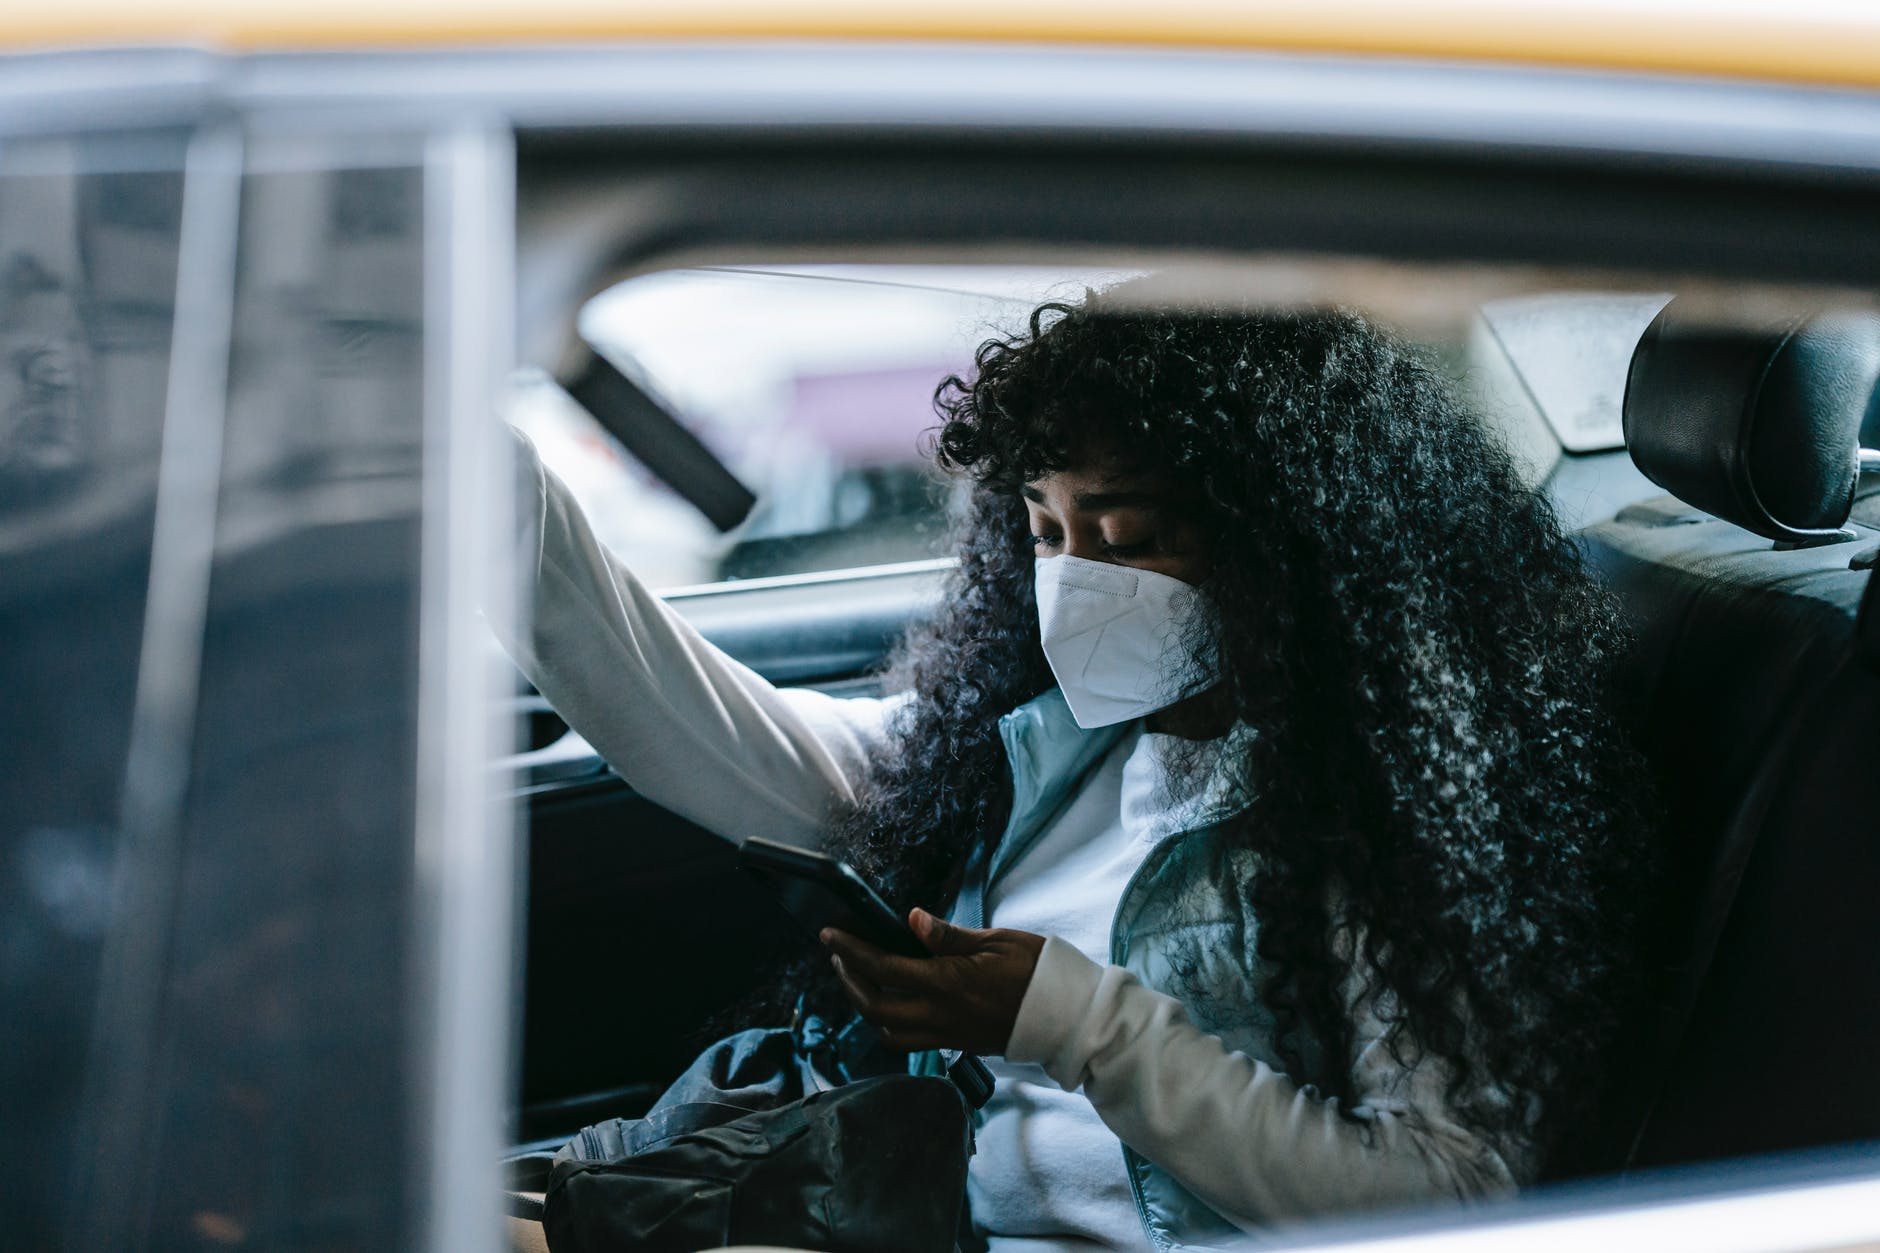 Woman in Taxi looking at phone.  Photo by Uriel Mont from Pexels